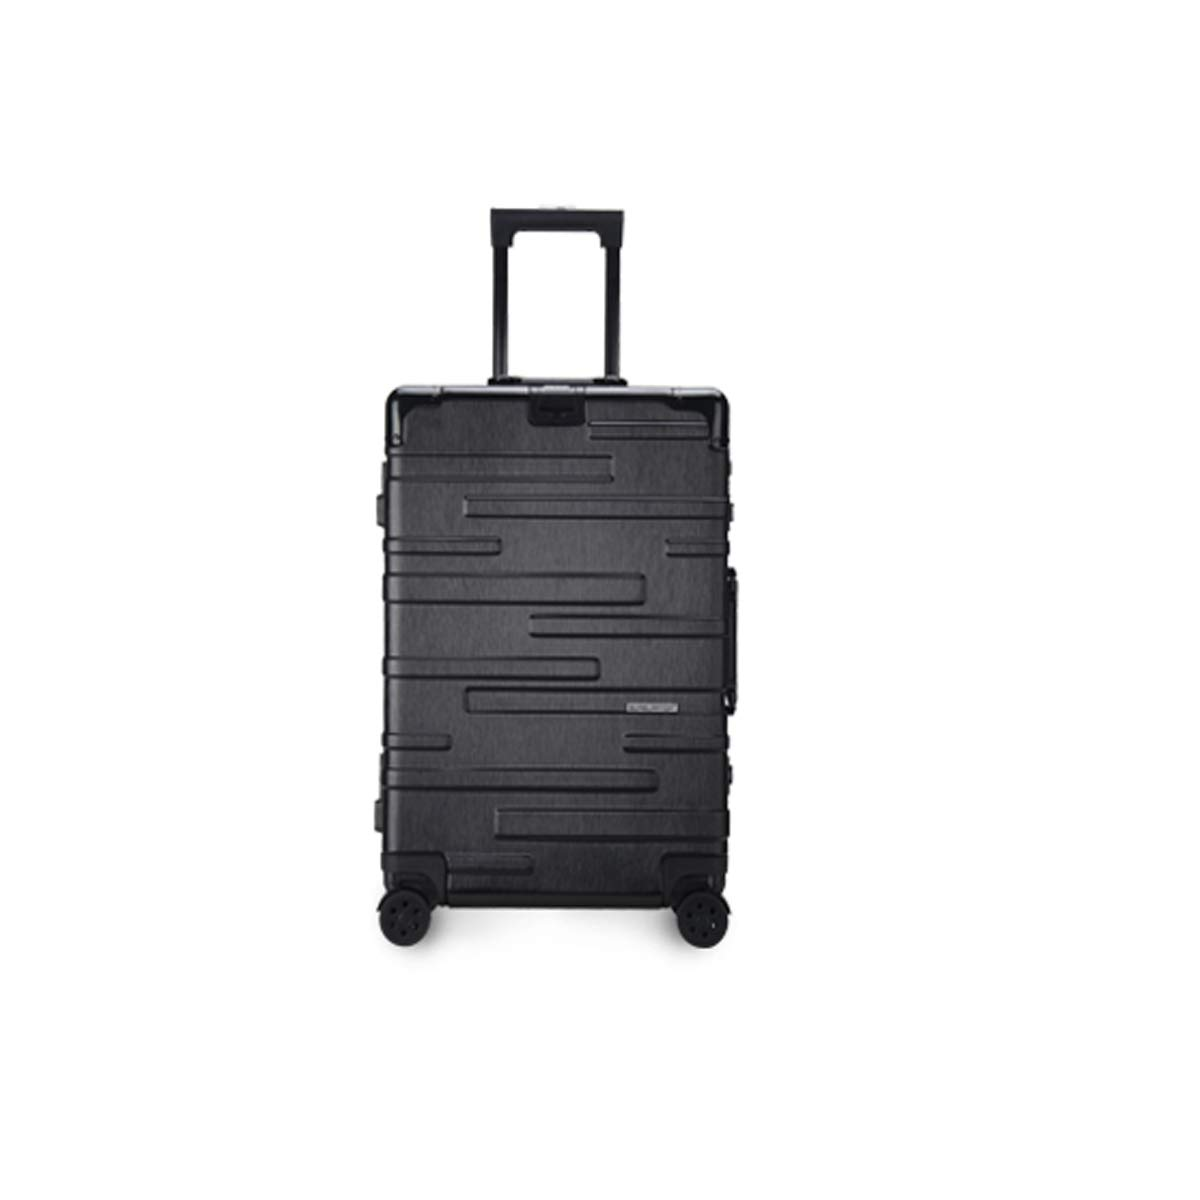 a234a8808e8b Amazon.com: Kehuitong Hard Suitcase, Travel Organizer, Portable ...